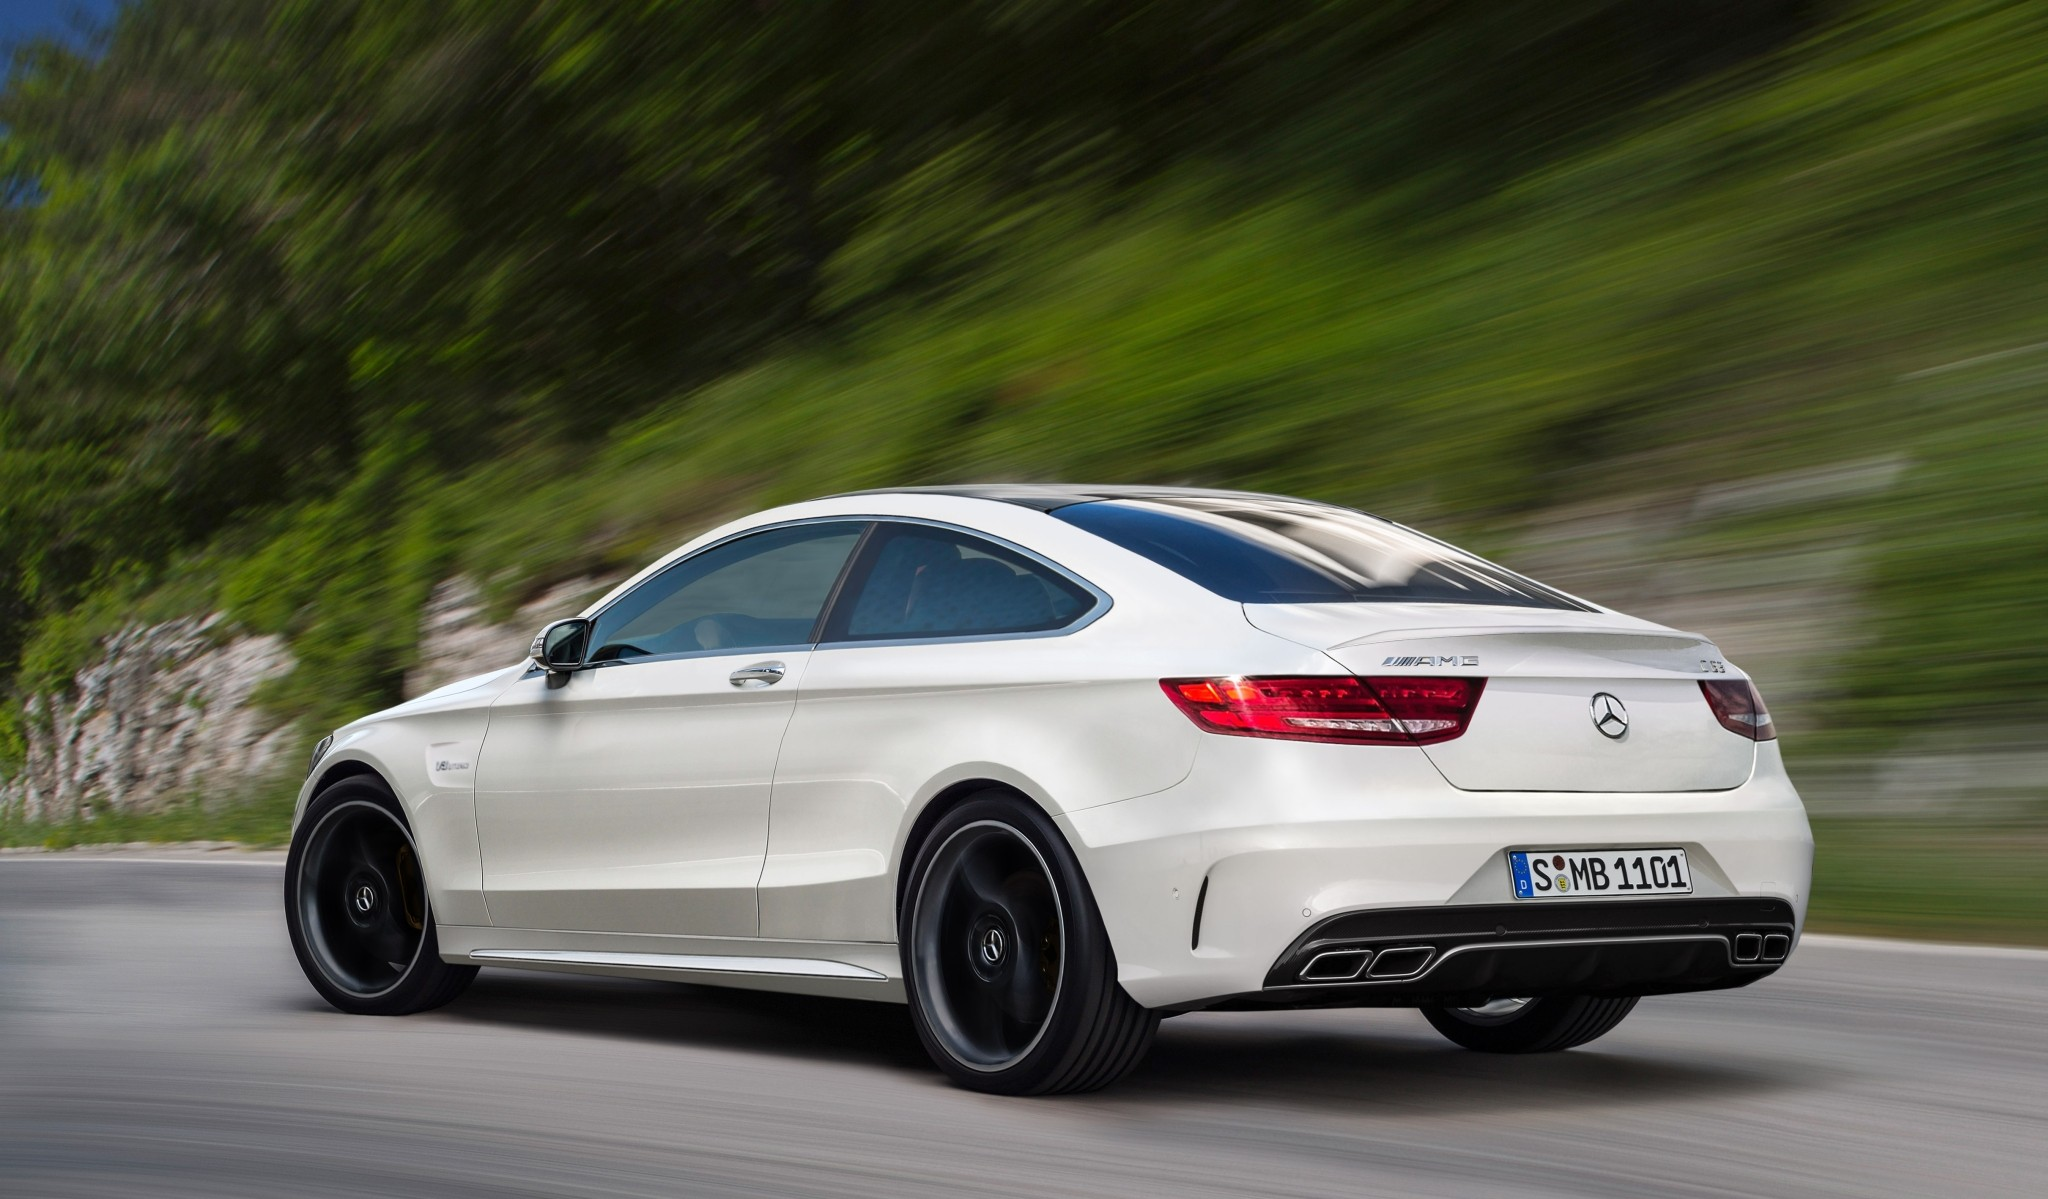 Mercedes-AMG C63 Coupe 002 Schulte Design